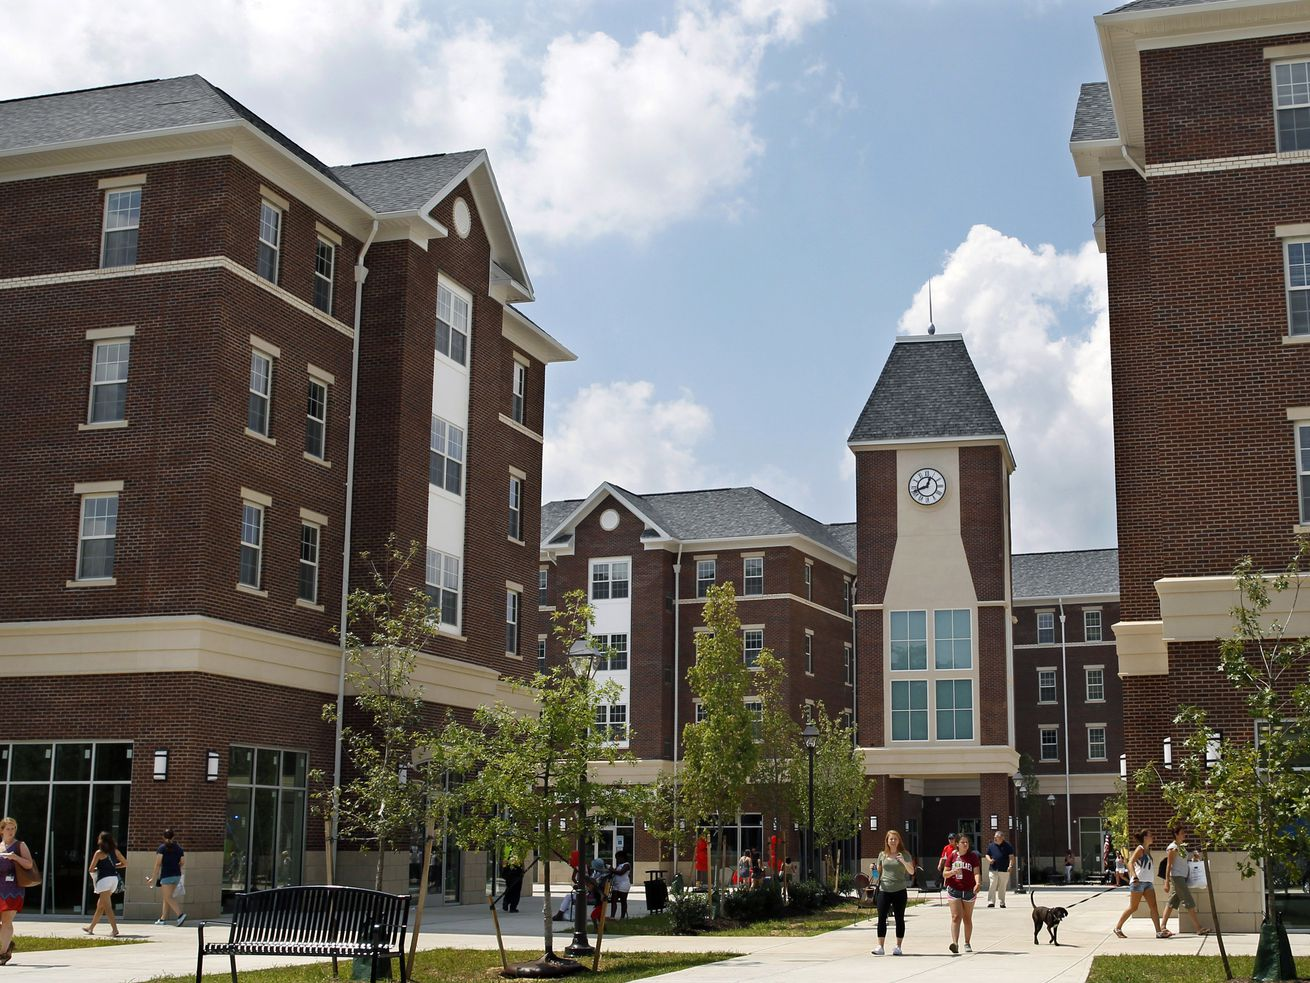 The courtyard of the Campus Town at The College of New Jersey, a mixed-use college housing development consisting of numerous brick-covered buildings.